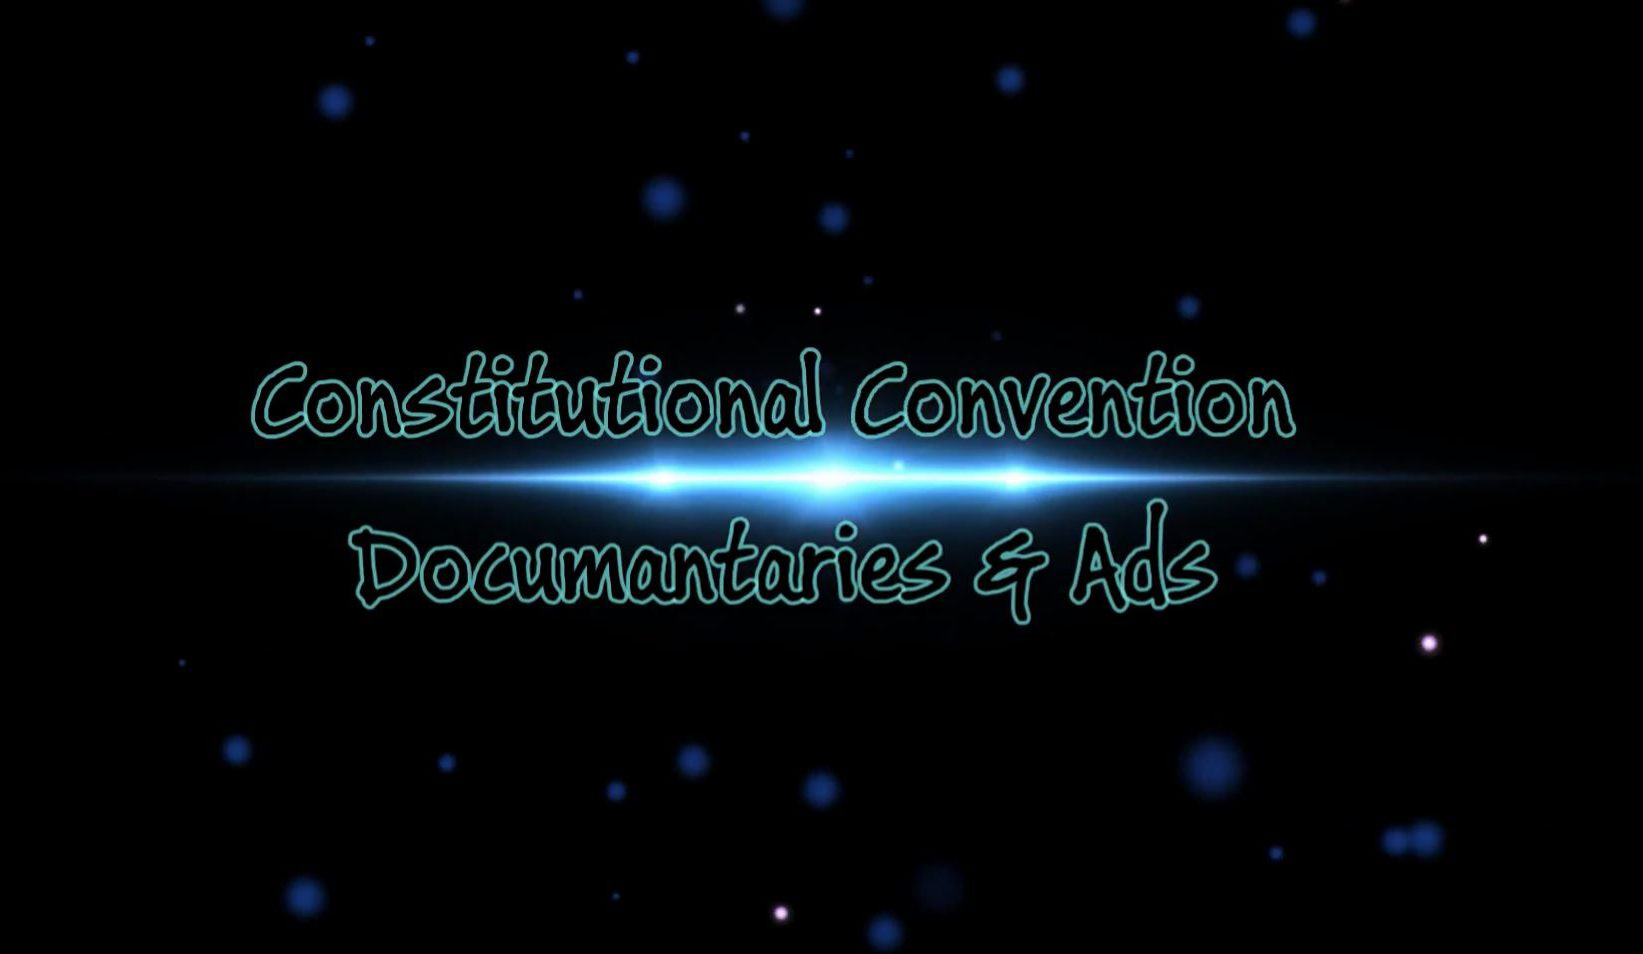 Length of Constitutional Convention Documentaries & Ads: 93 Minutes